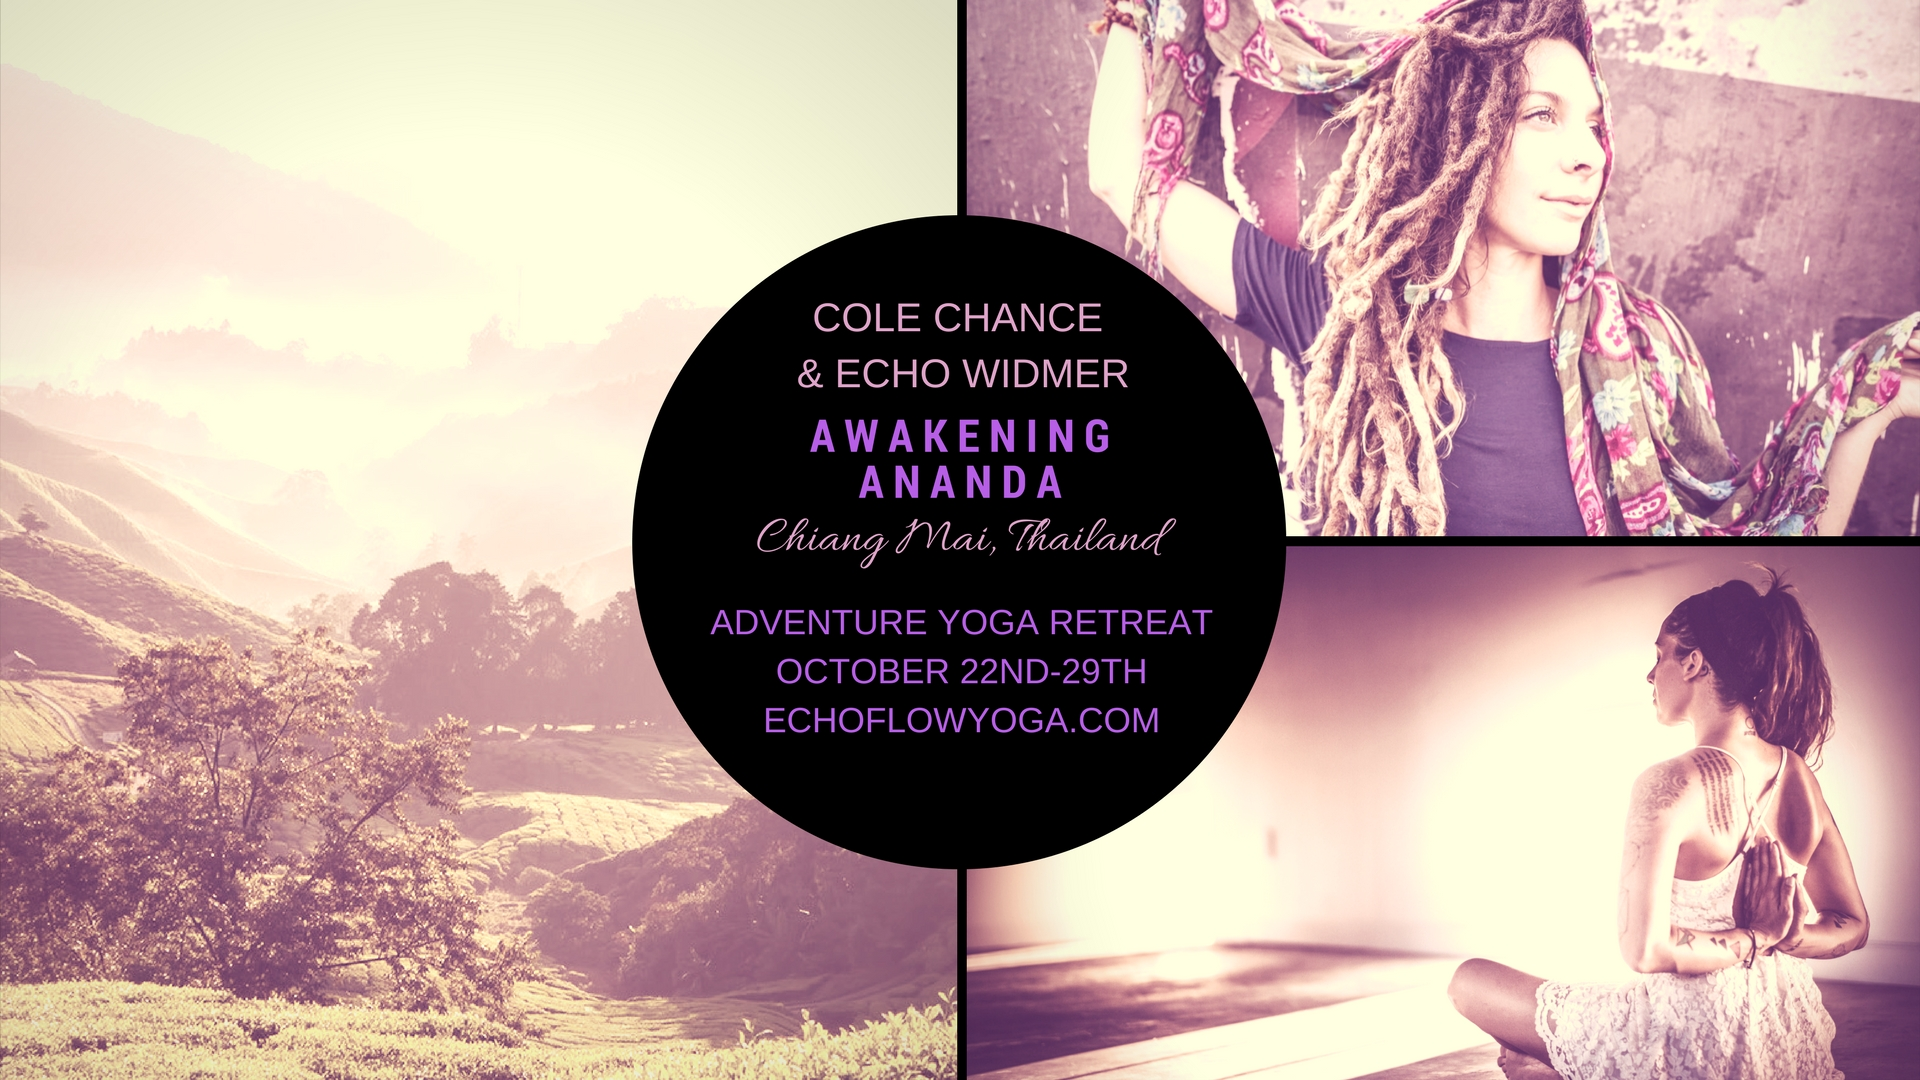 Awakening Ananda Yoga Retreat Poster for Cole Chance and Echo Windmer's Retreat at the Mala Dhara Yoga Retreat Center in Chiang Mai, Thailand i October 2017